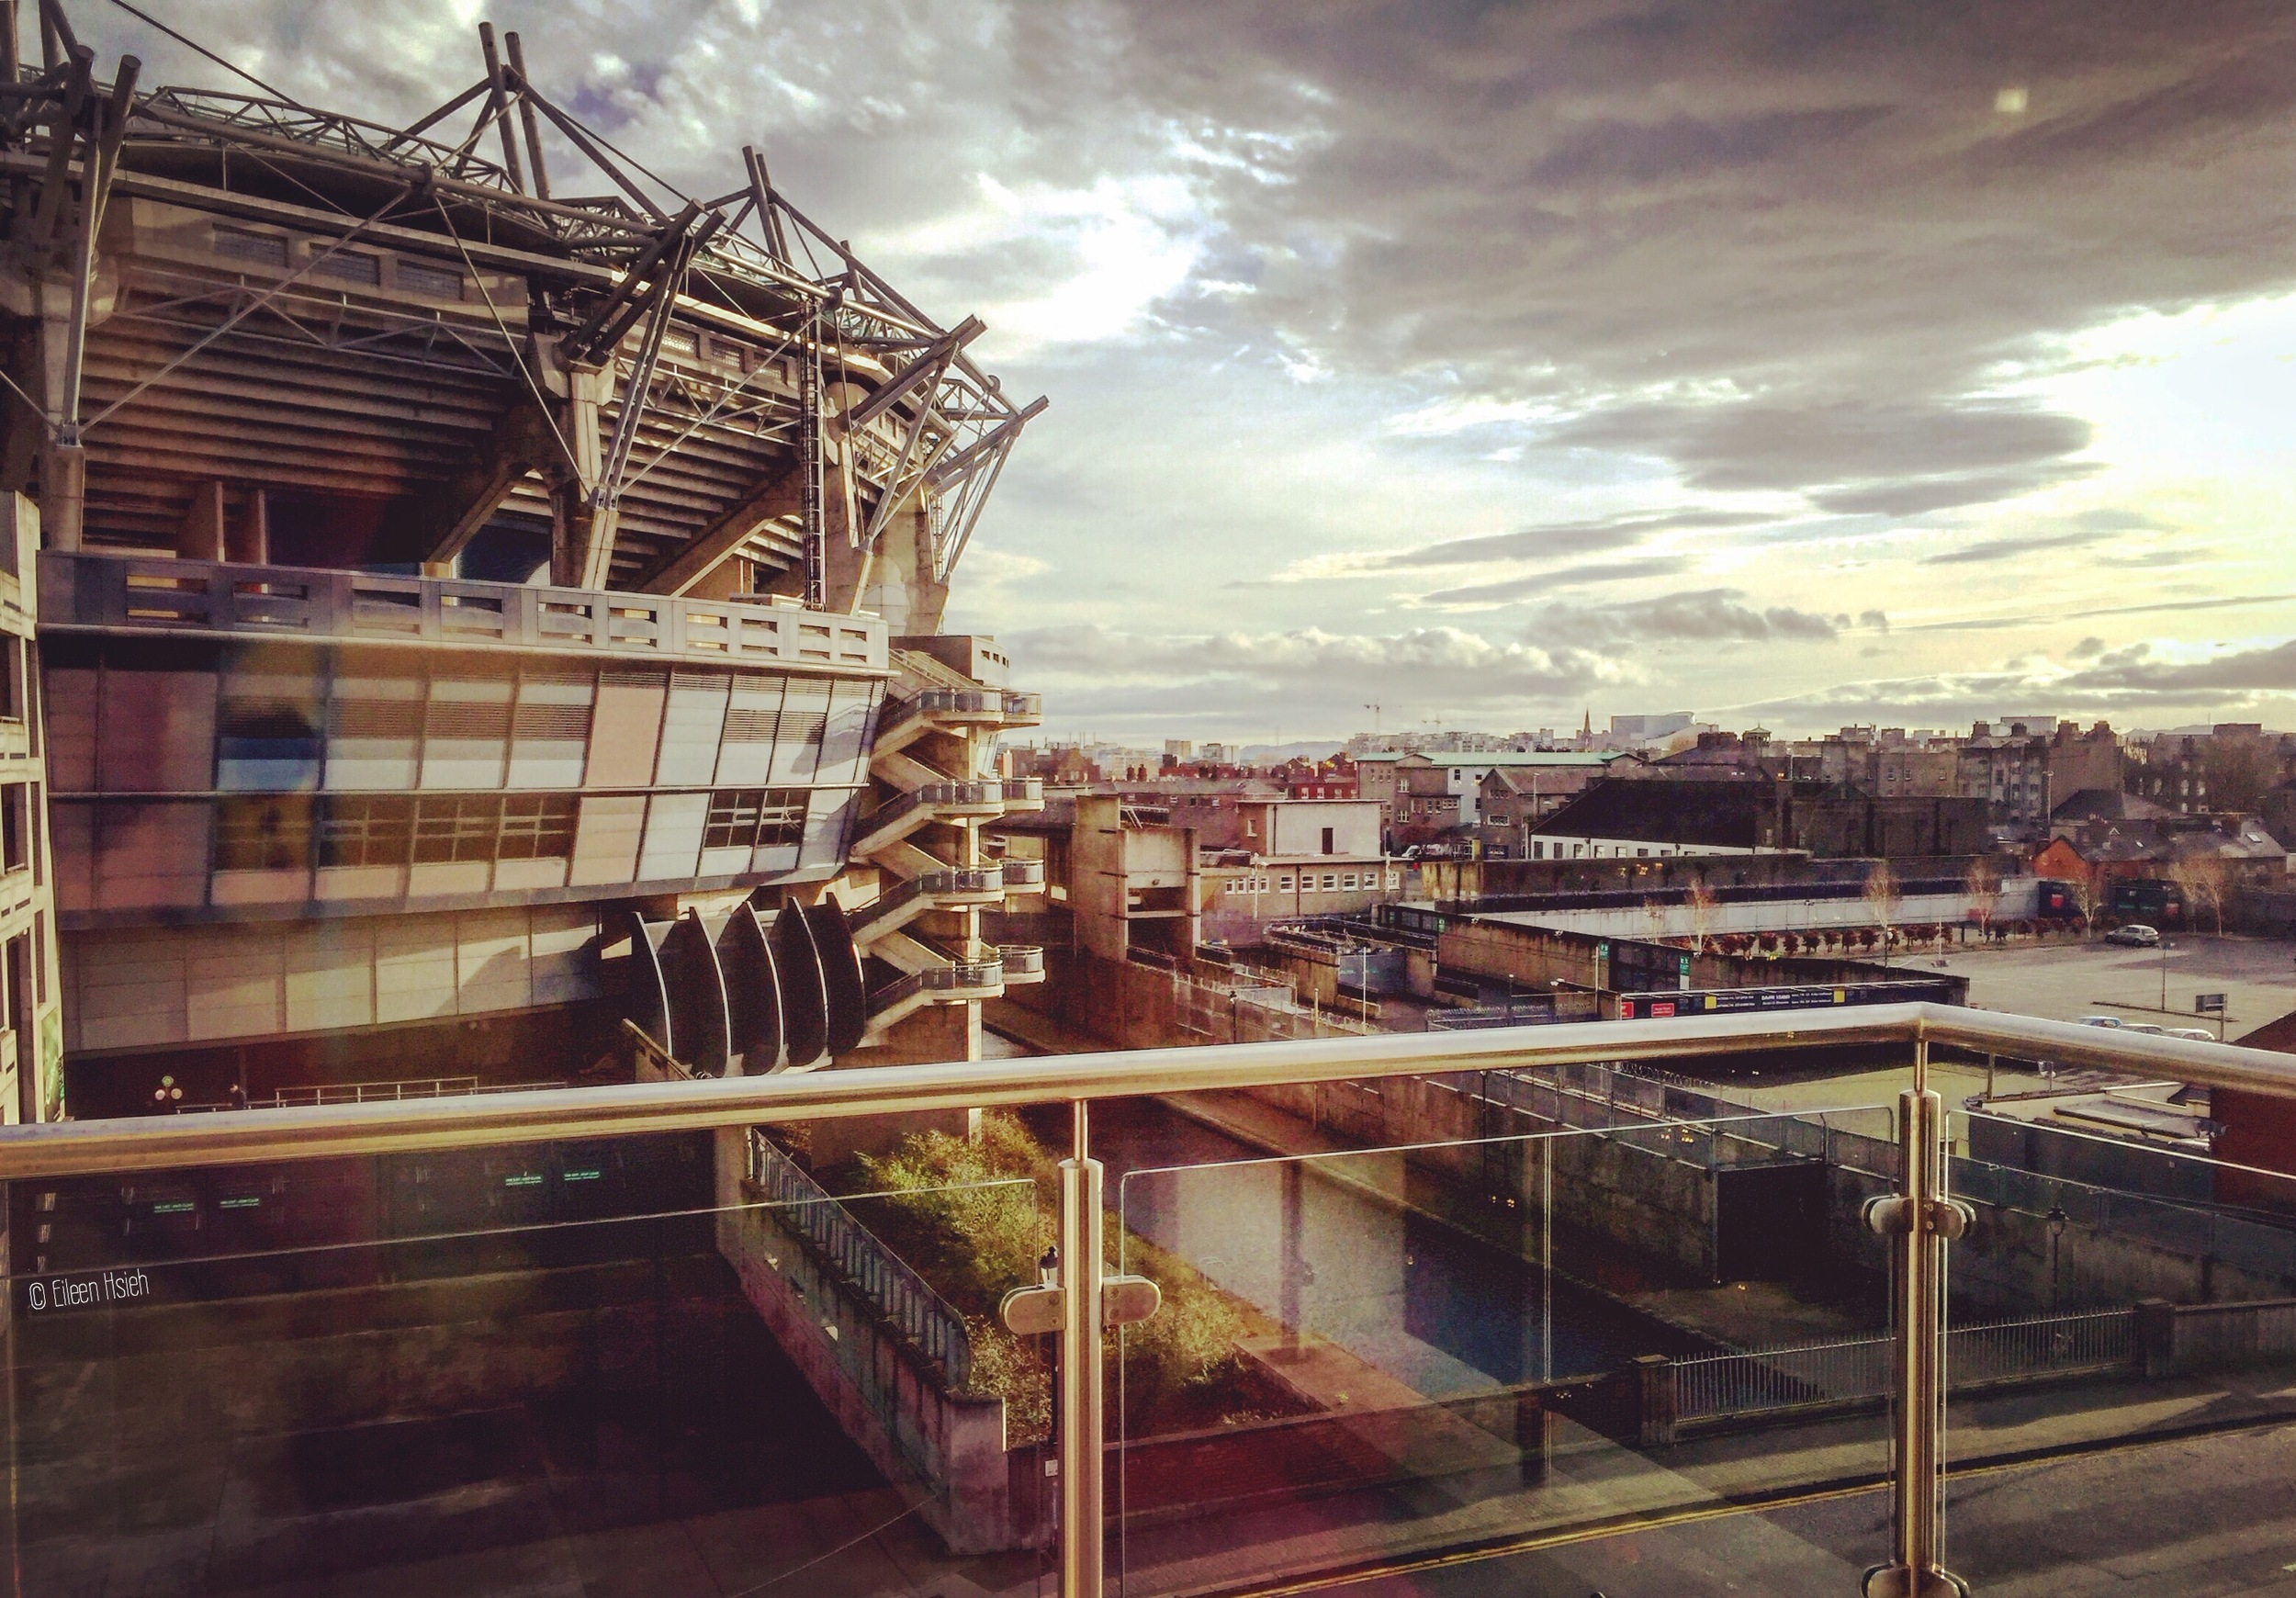 View of the stadium and canal from the Croke Park Hotel across the street.